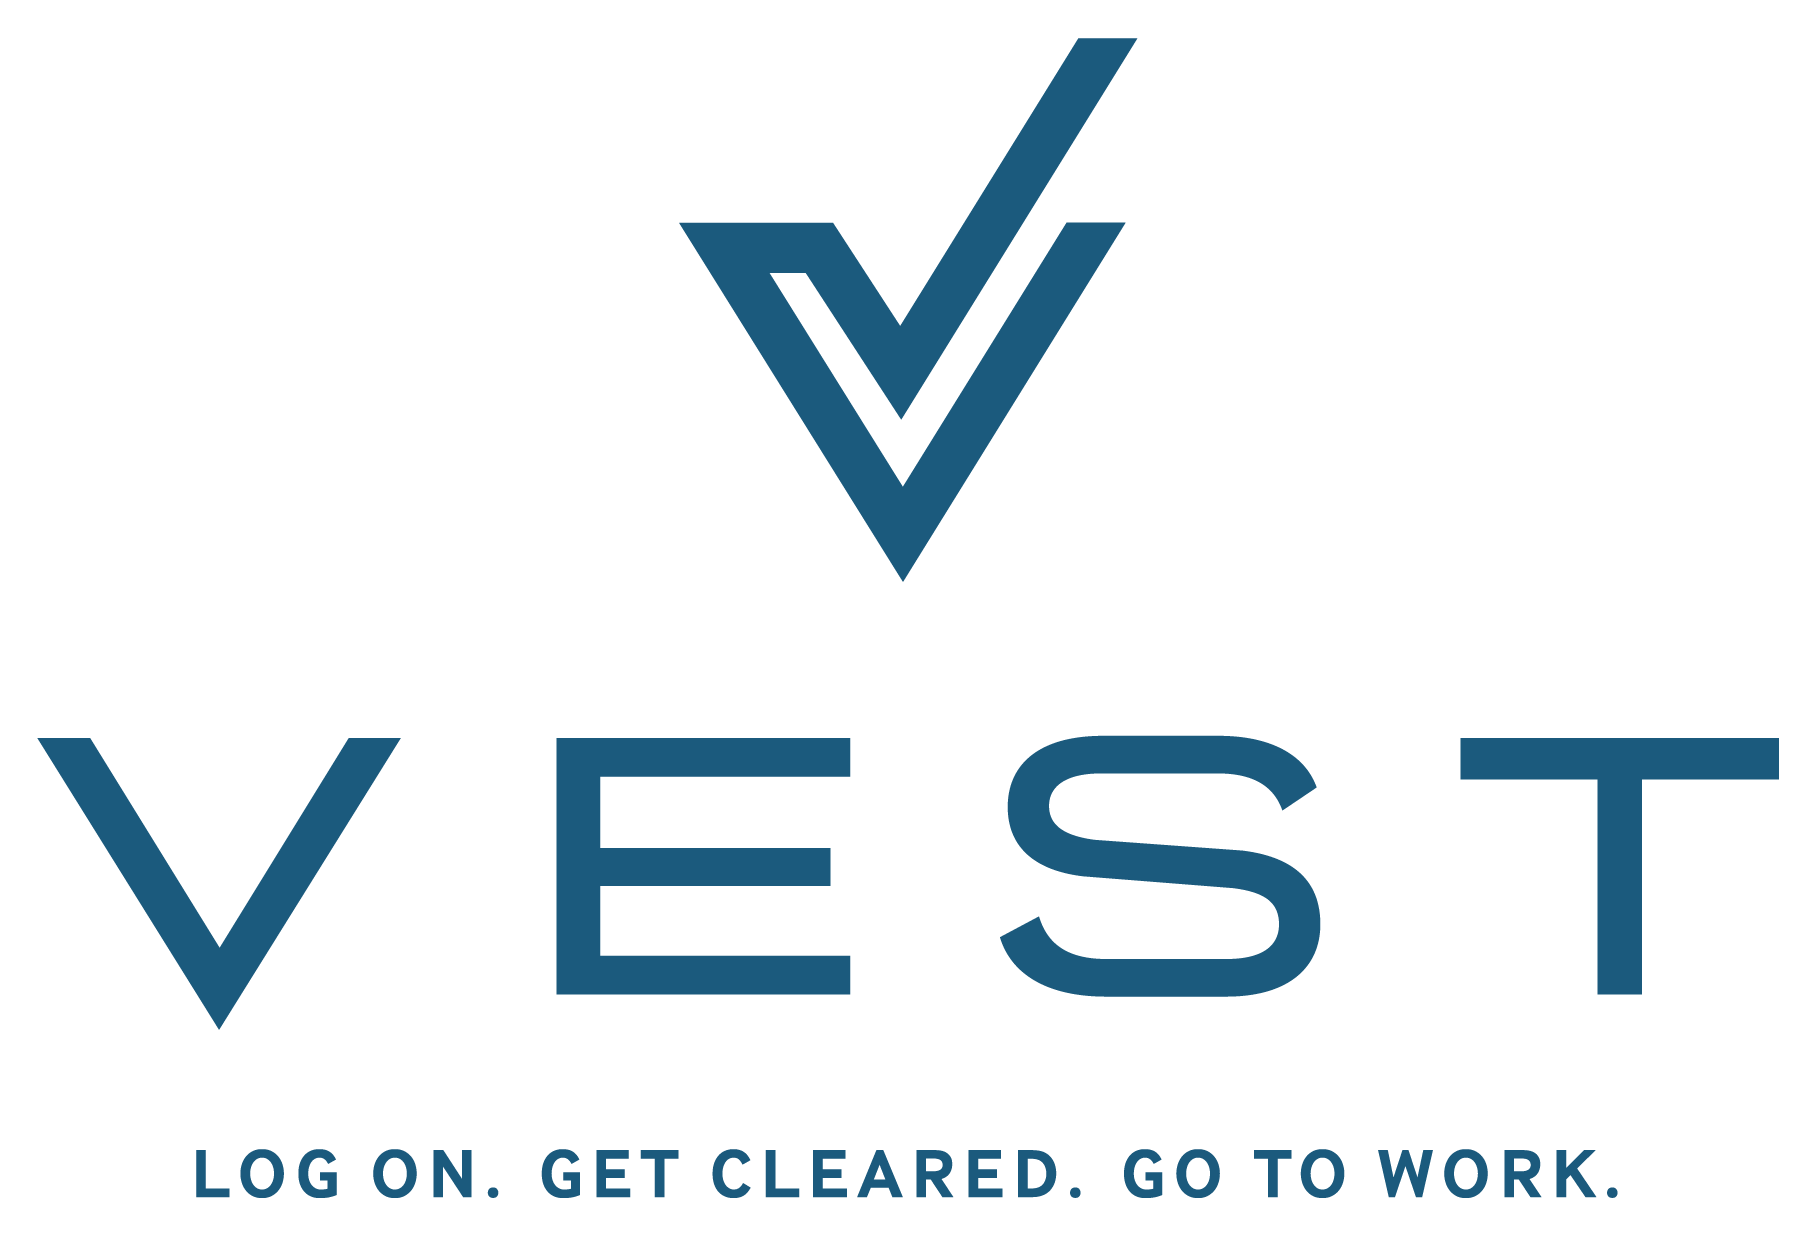 Vest Safety Medical Services Launches Innovative Branding at Safety 2021 Professional Development Conference & Exposition